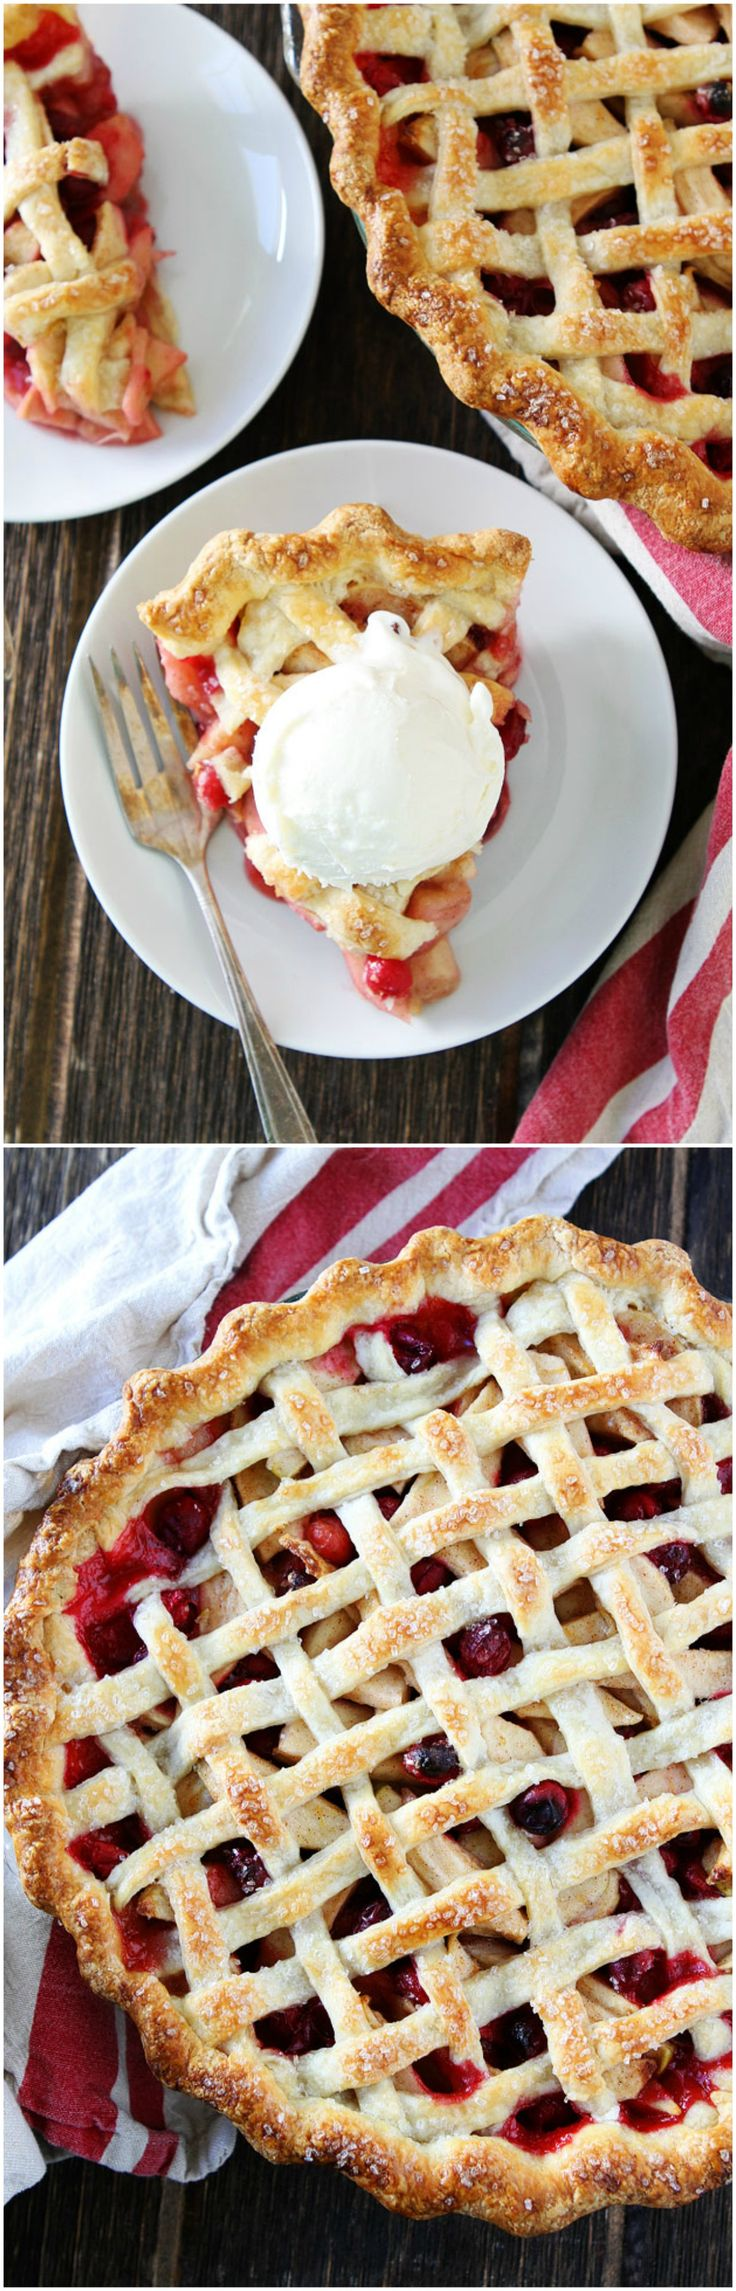 Apple Cranberry Pie Recipe on twopeasandtheirpo... Flaky, buttery pie crust filled with apples and fresh cranberries. This is the perfect holiday dessert!